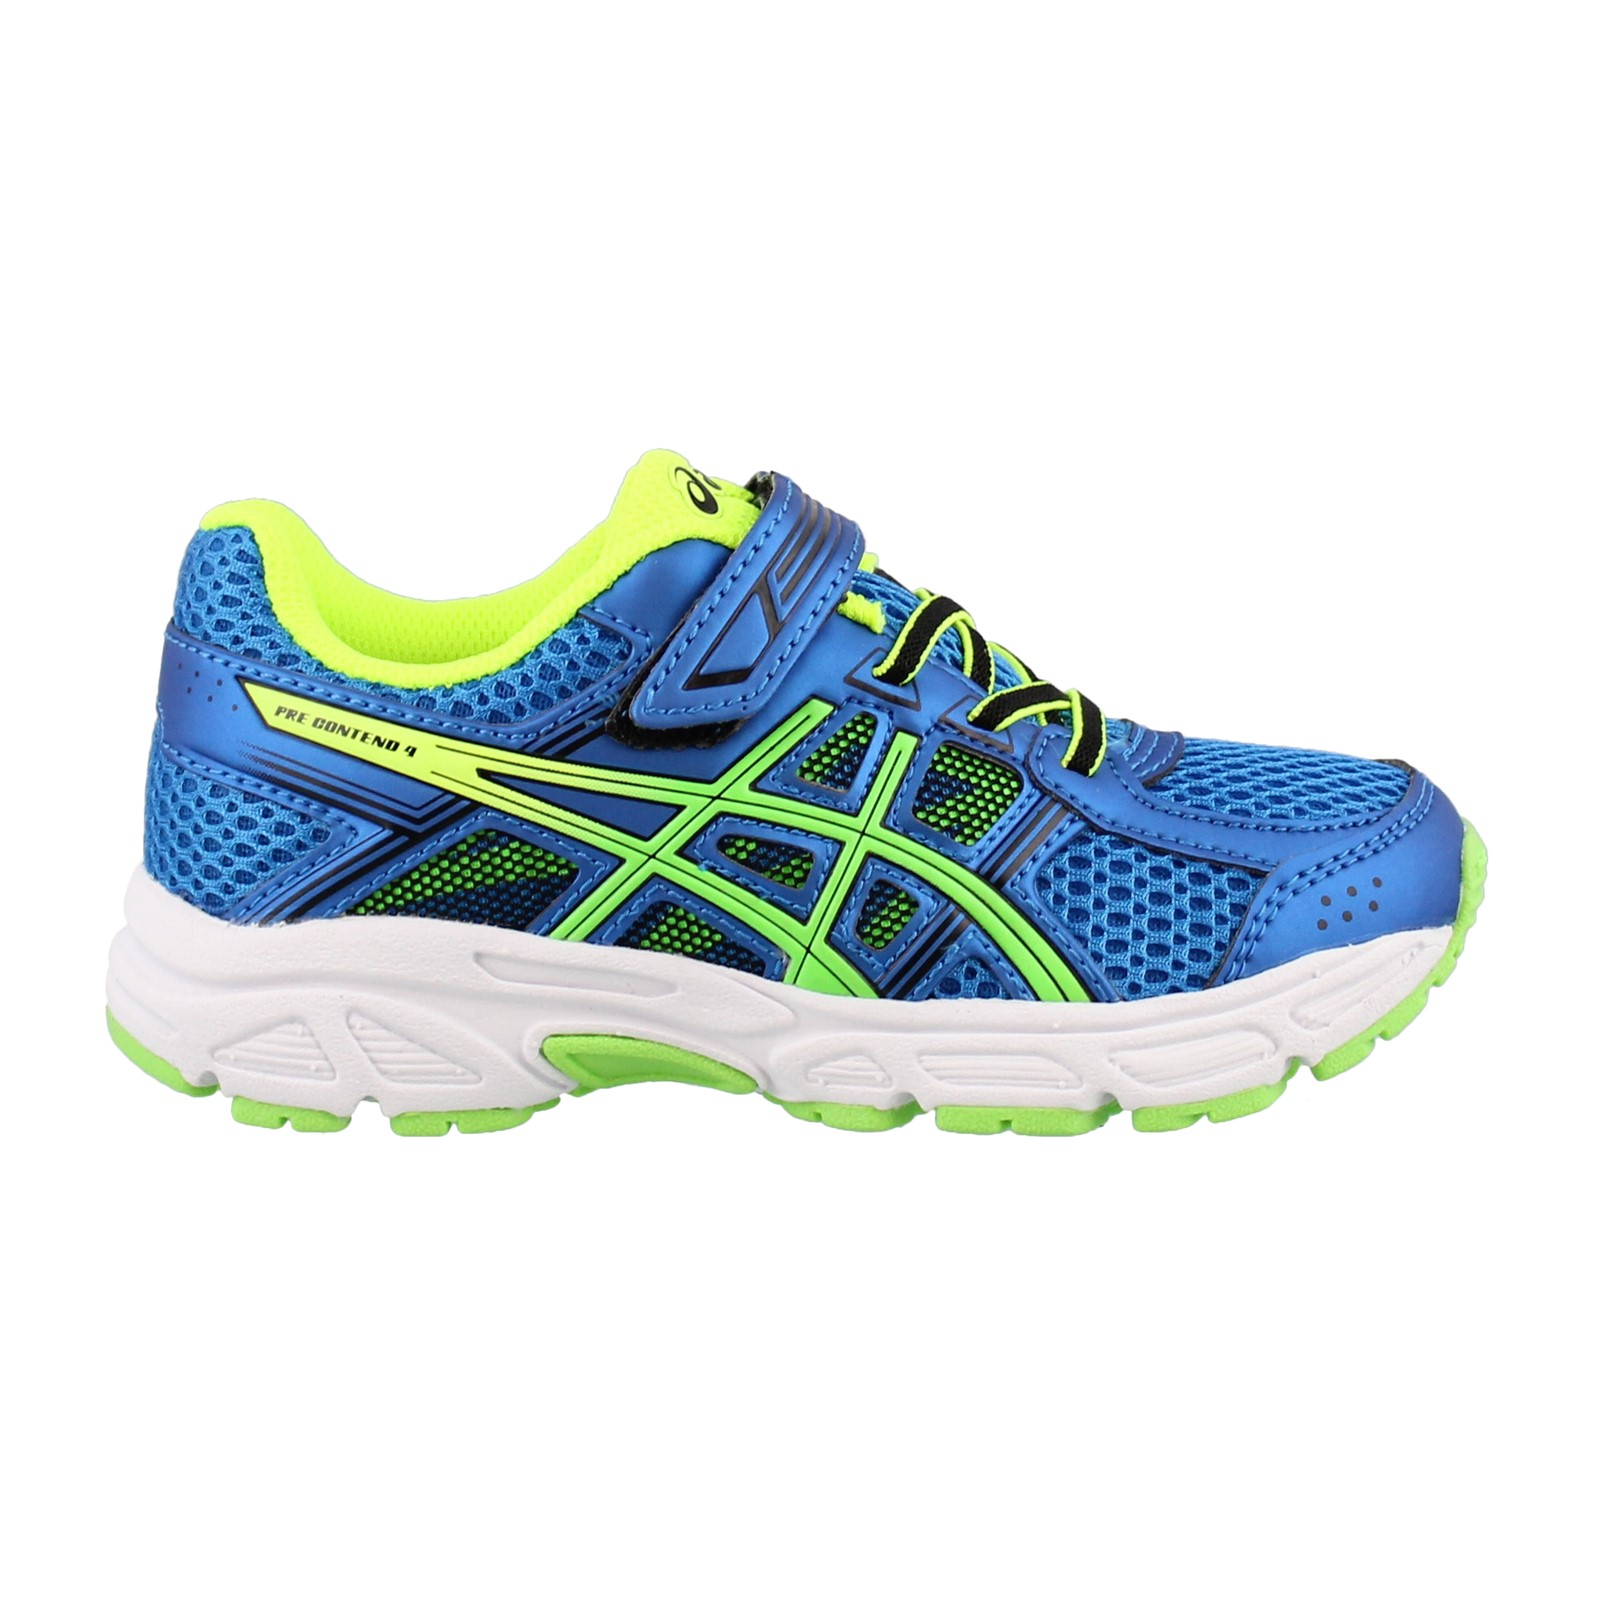 Boy's Asics, Gel Contend 4 GS Running Sneakers